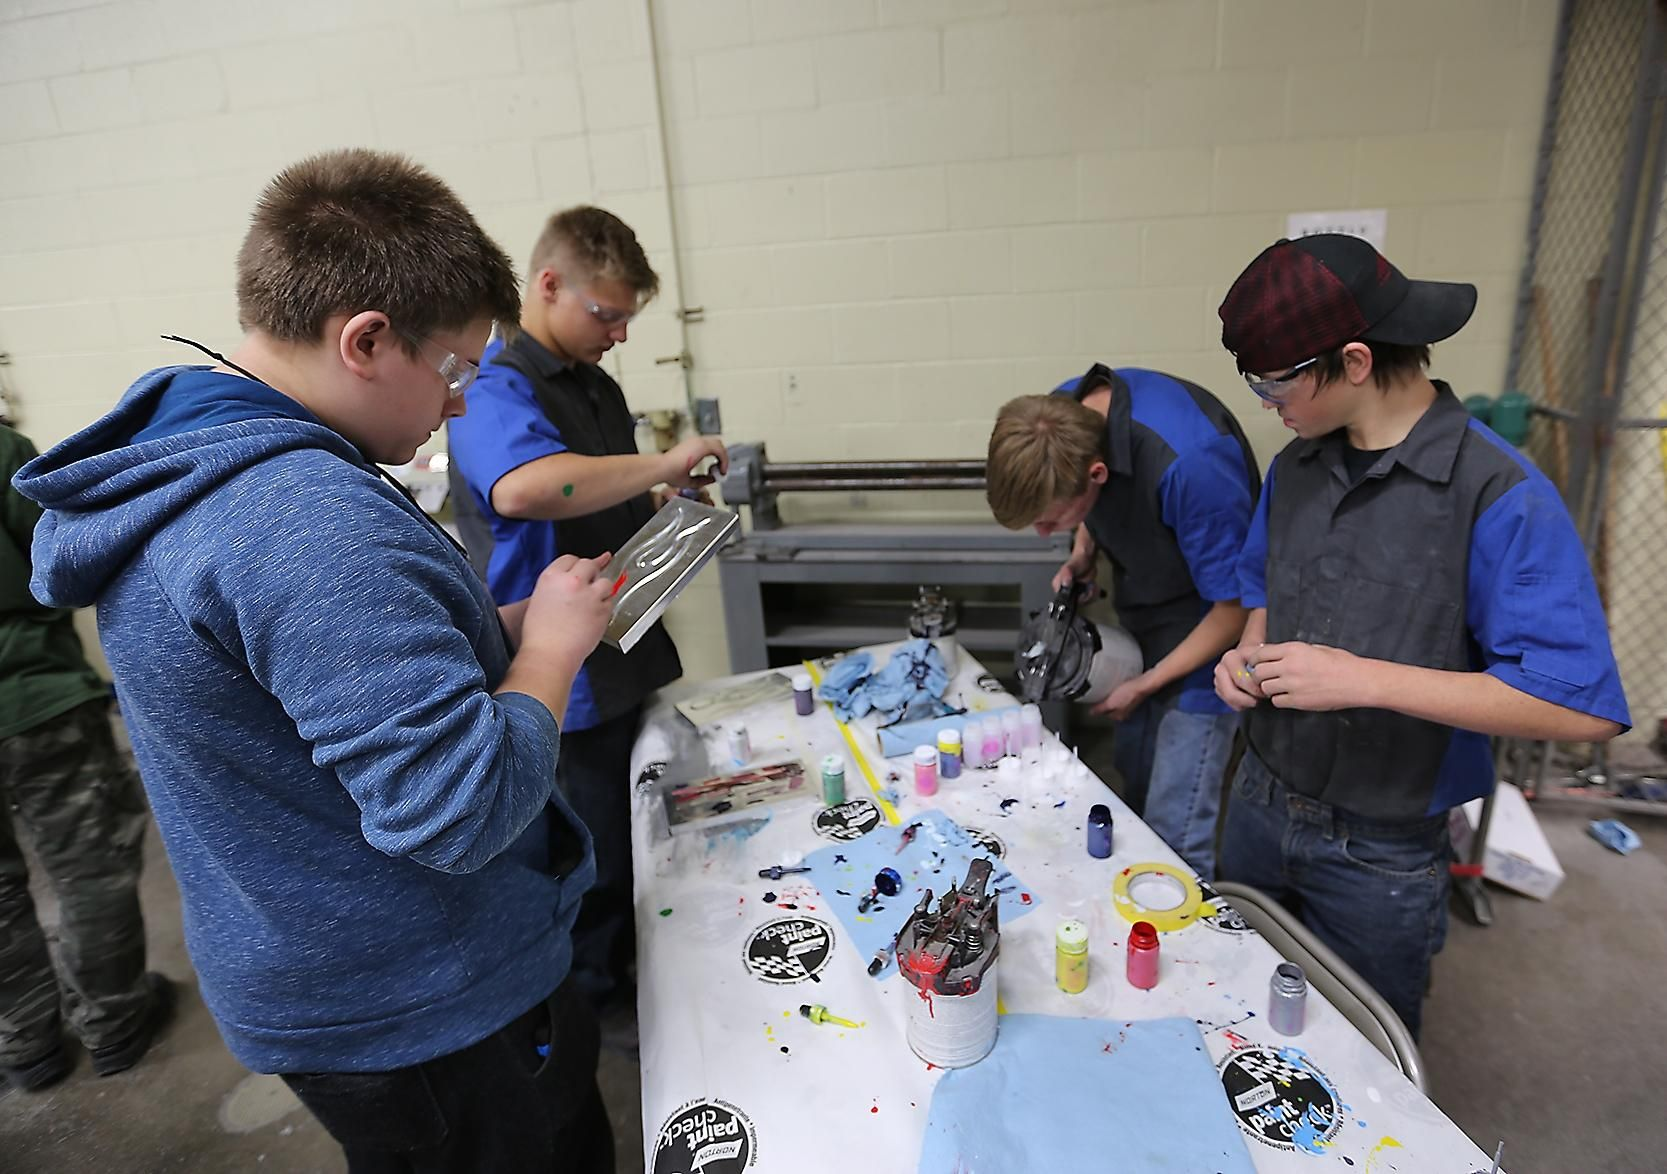 Buckeye career center took advantage of a chance to show